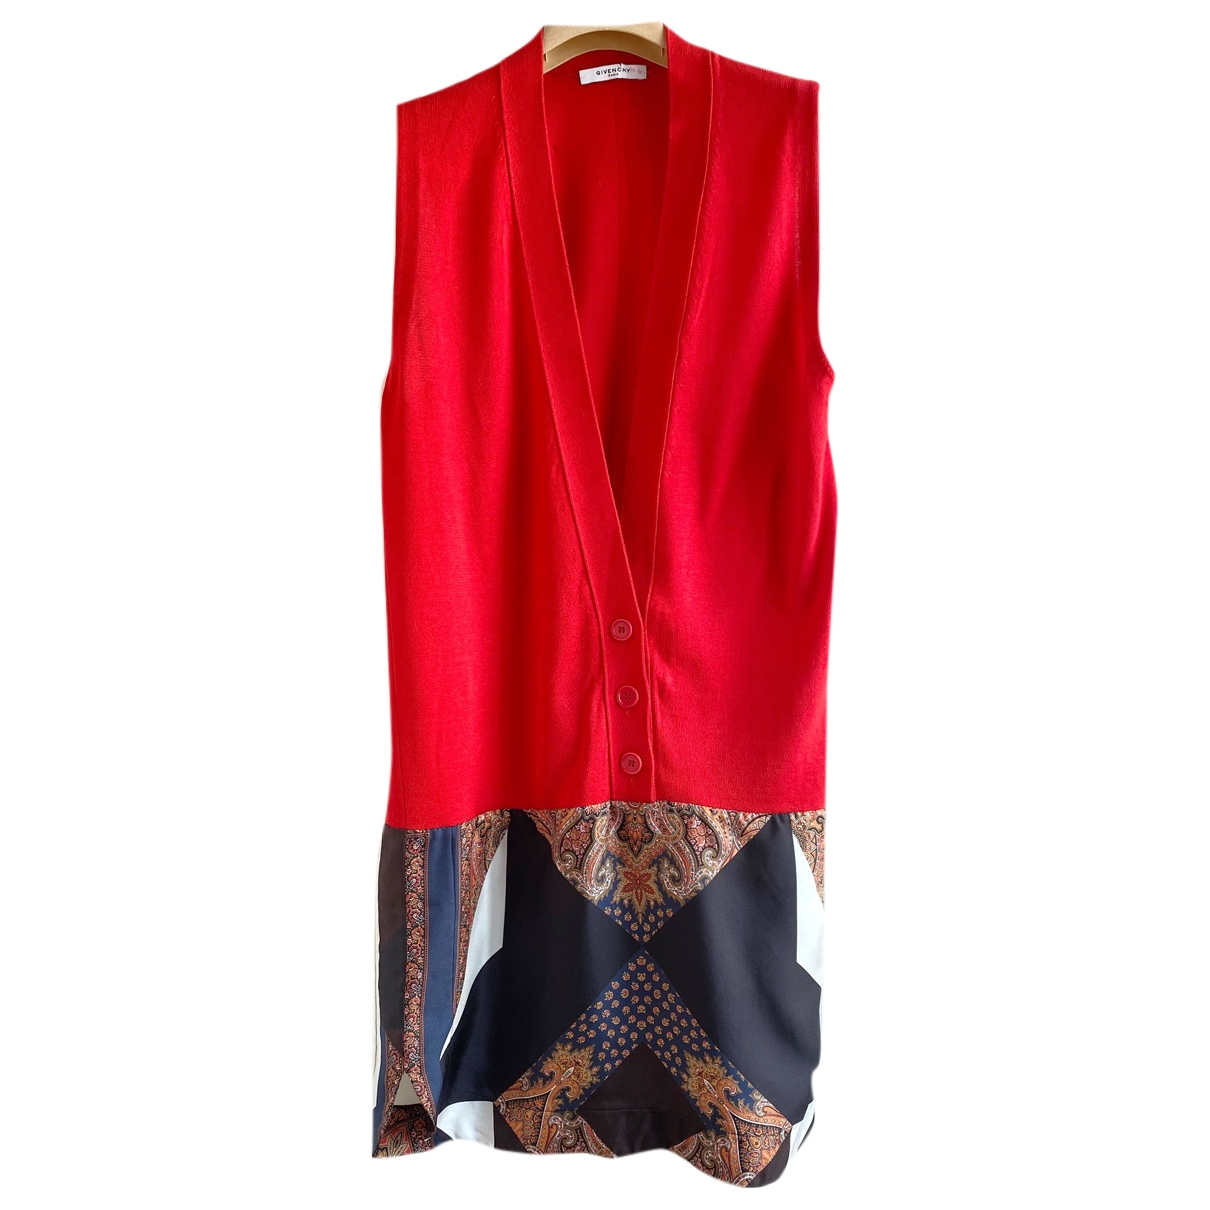 Givenchy \N Red Cotton dress for Women 36 FR